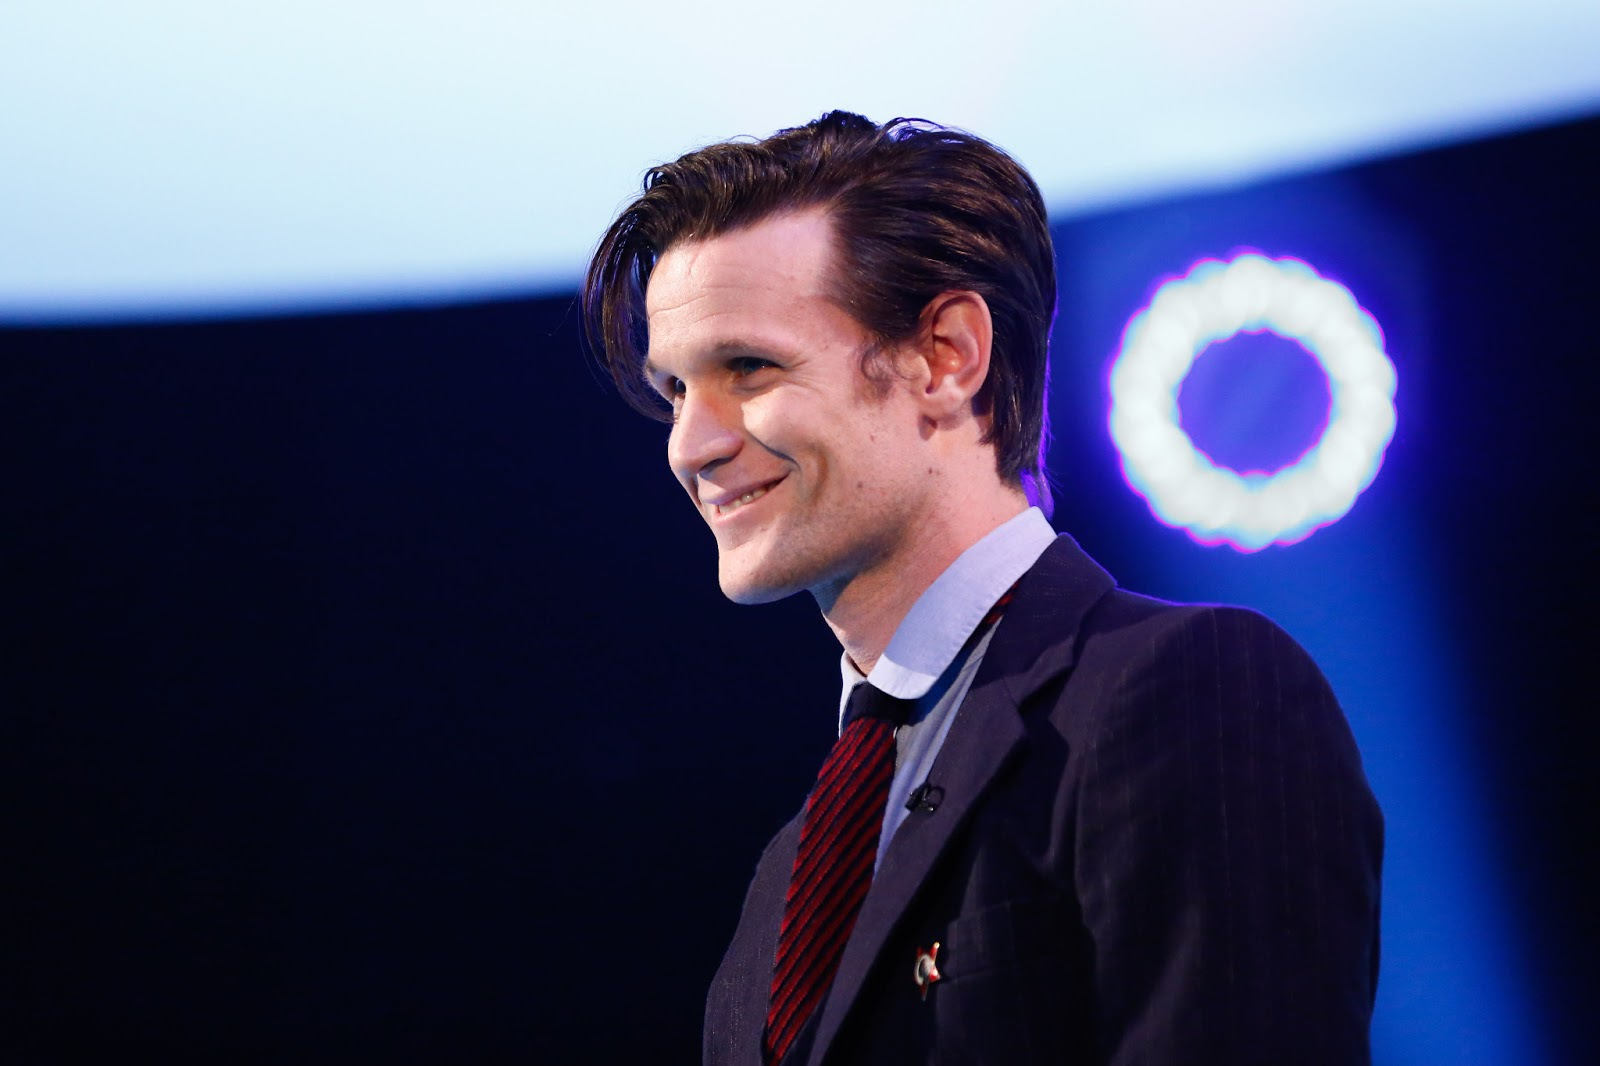 Matt Smith Wallpapers Images Photos Pictures Backgrounds 1600x1066